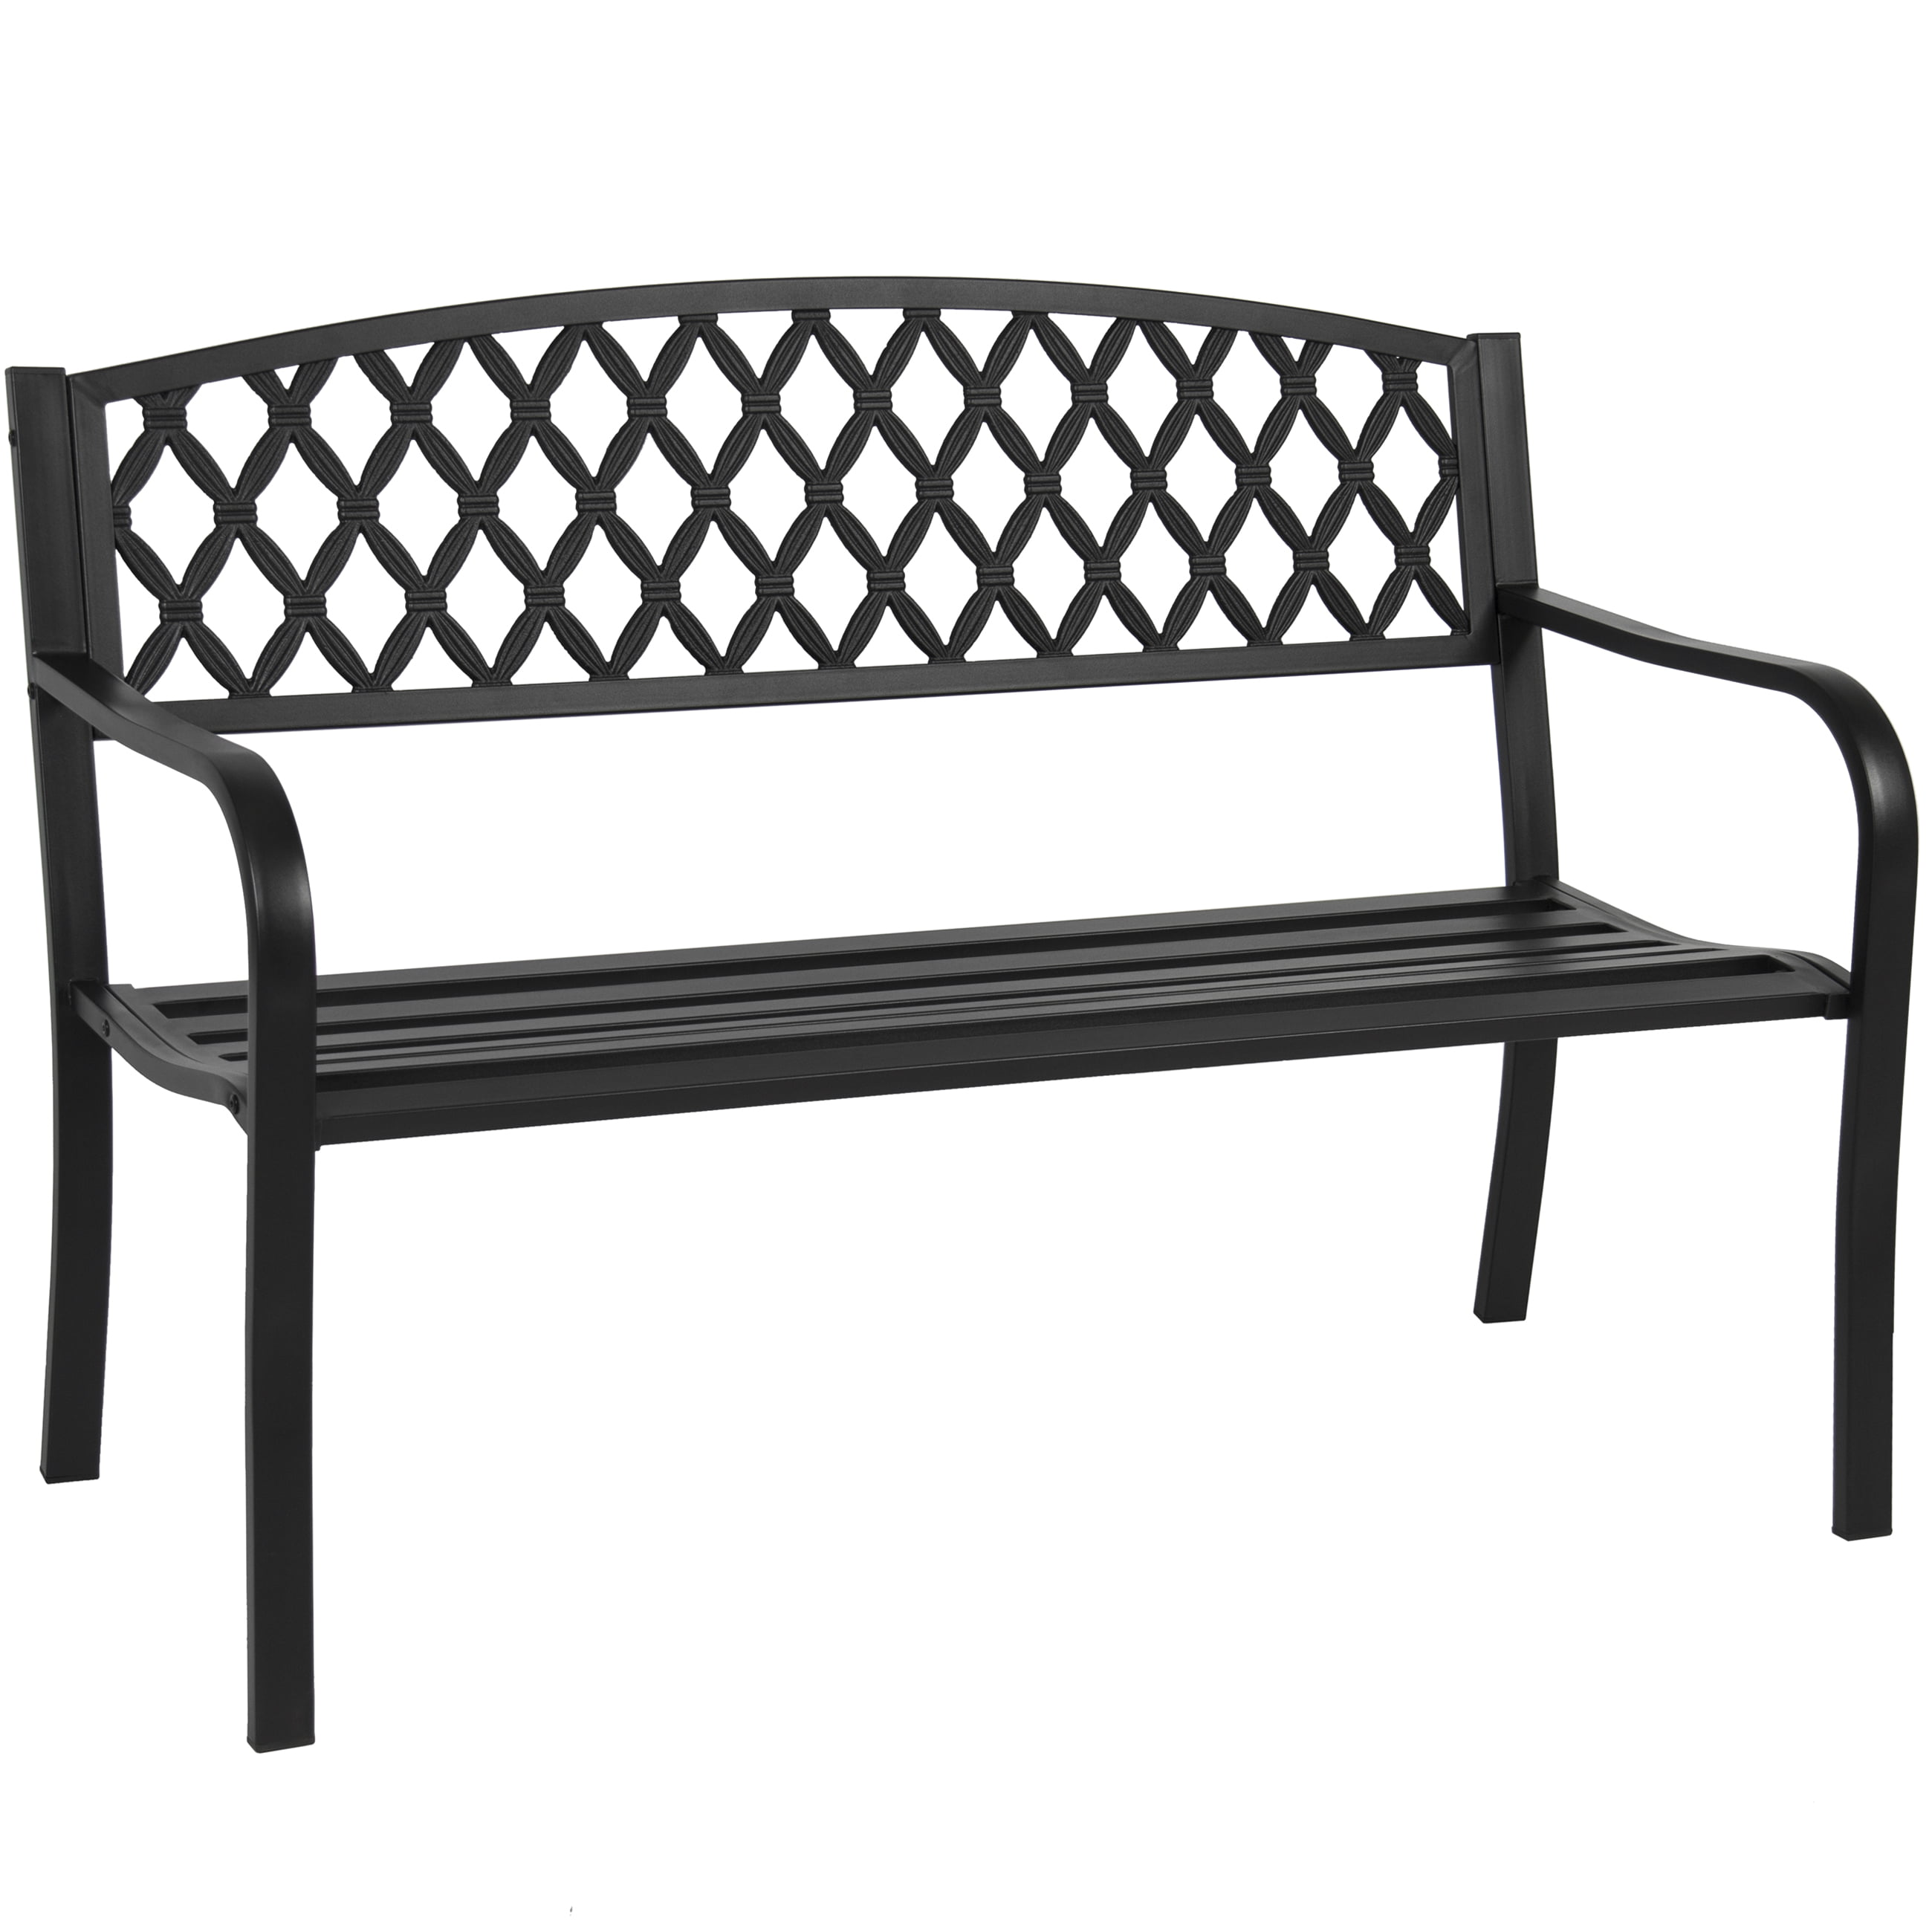 Bcp 50 Patio Garden Bench Park Yard Outdoor Furniture Steel Frame Porch Chair At Garden Sensation